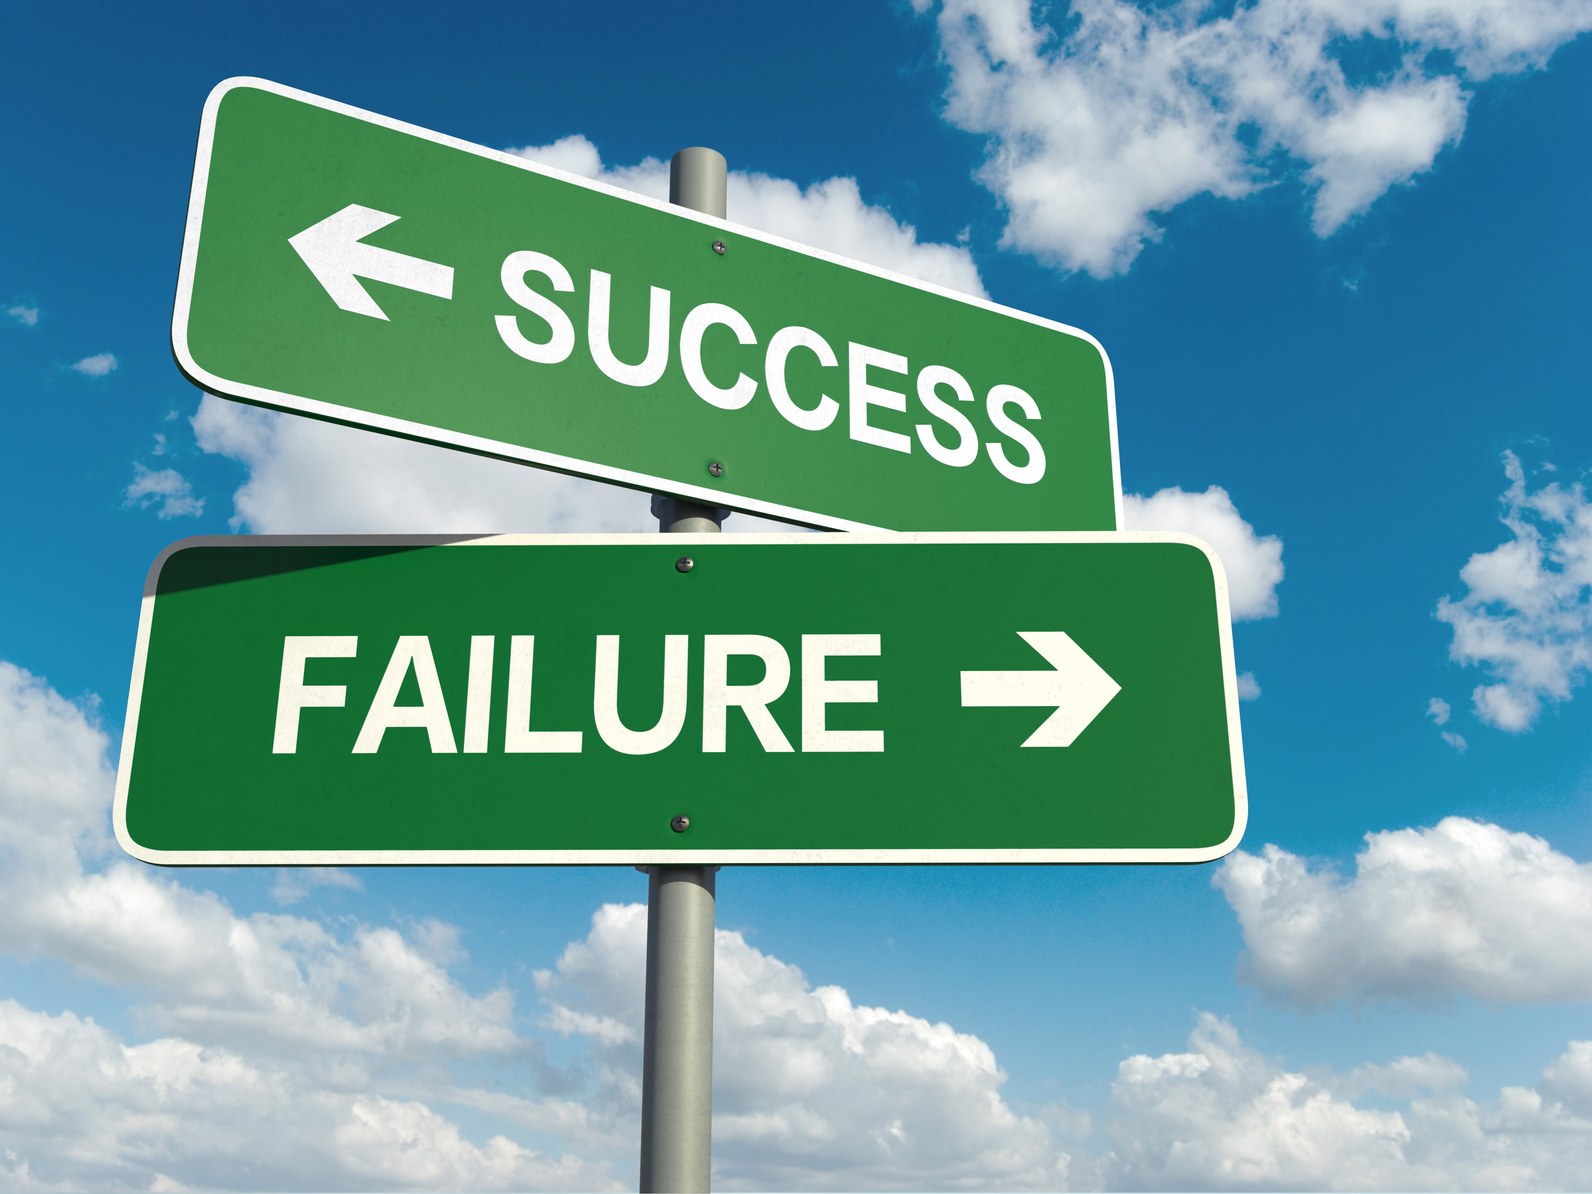 Don't Risk Failing the RoATP! - 13th January Deadline to Complete Your Provision in The Course Directory Portal